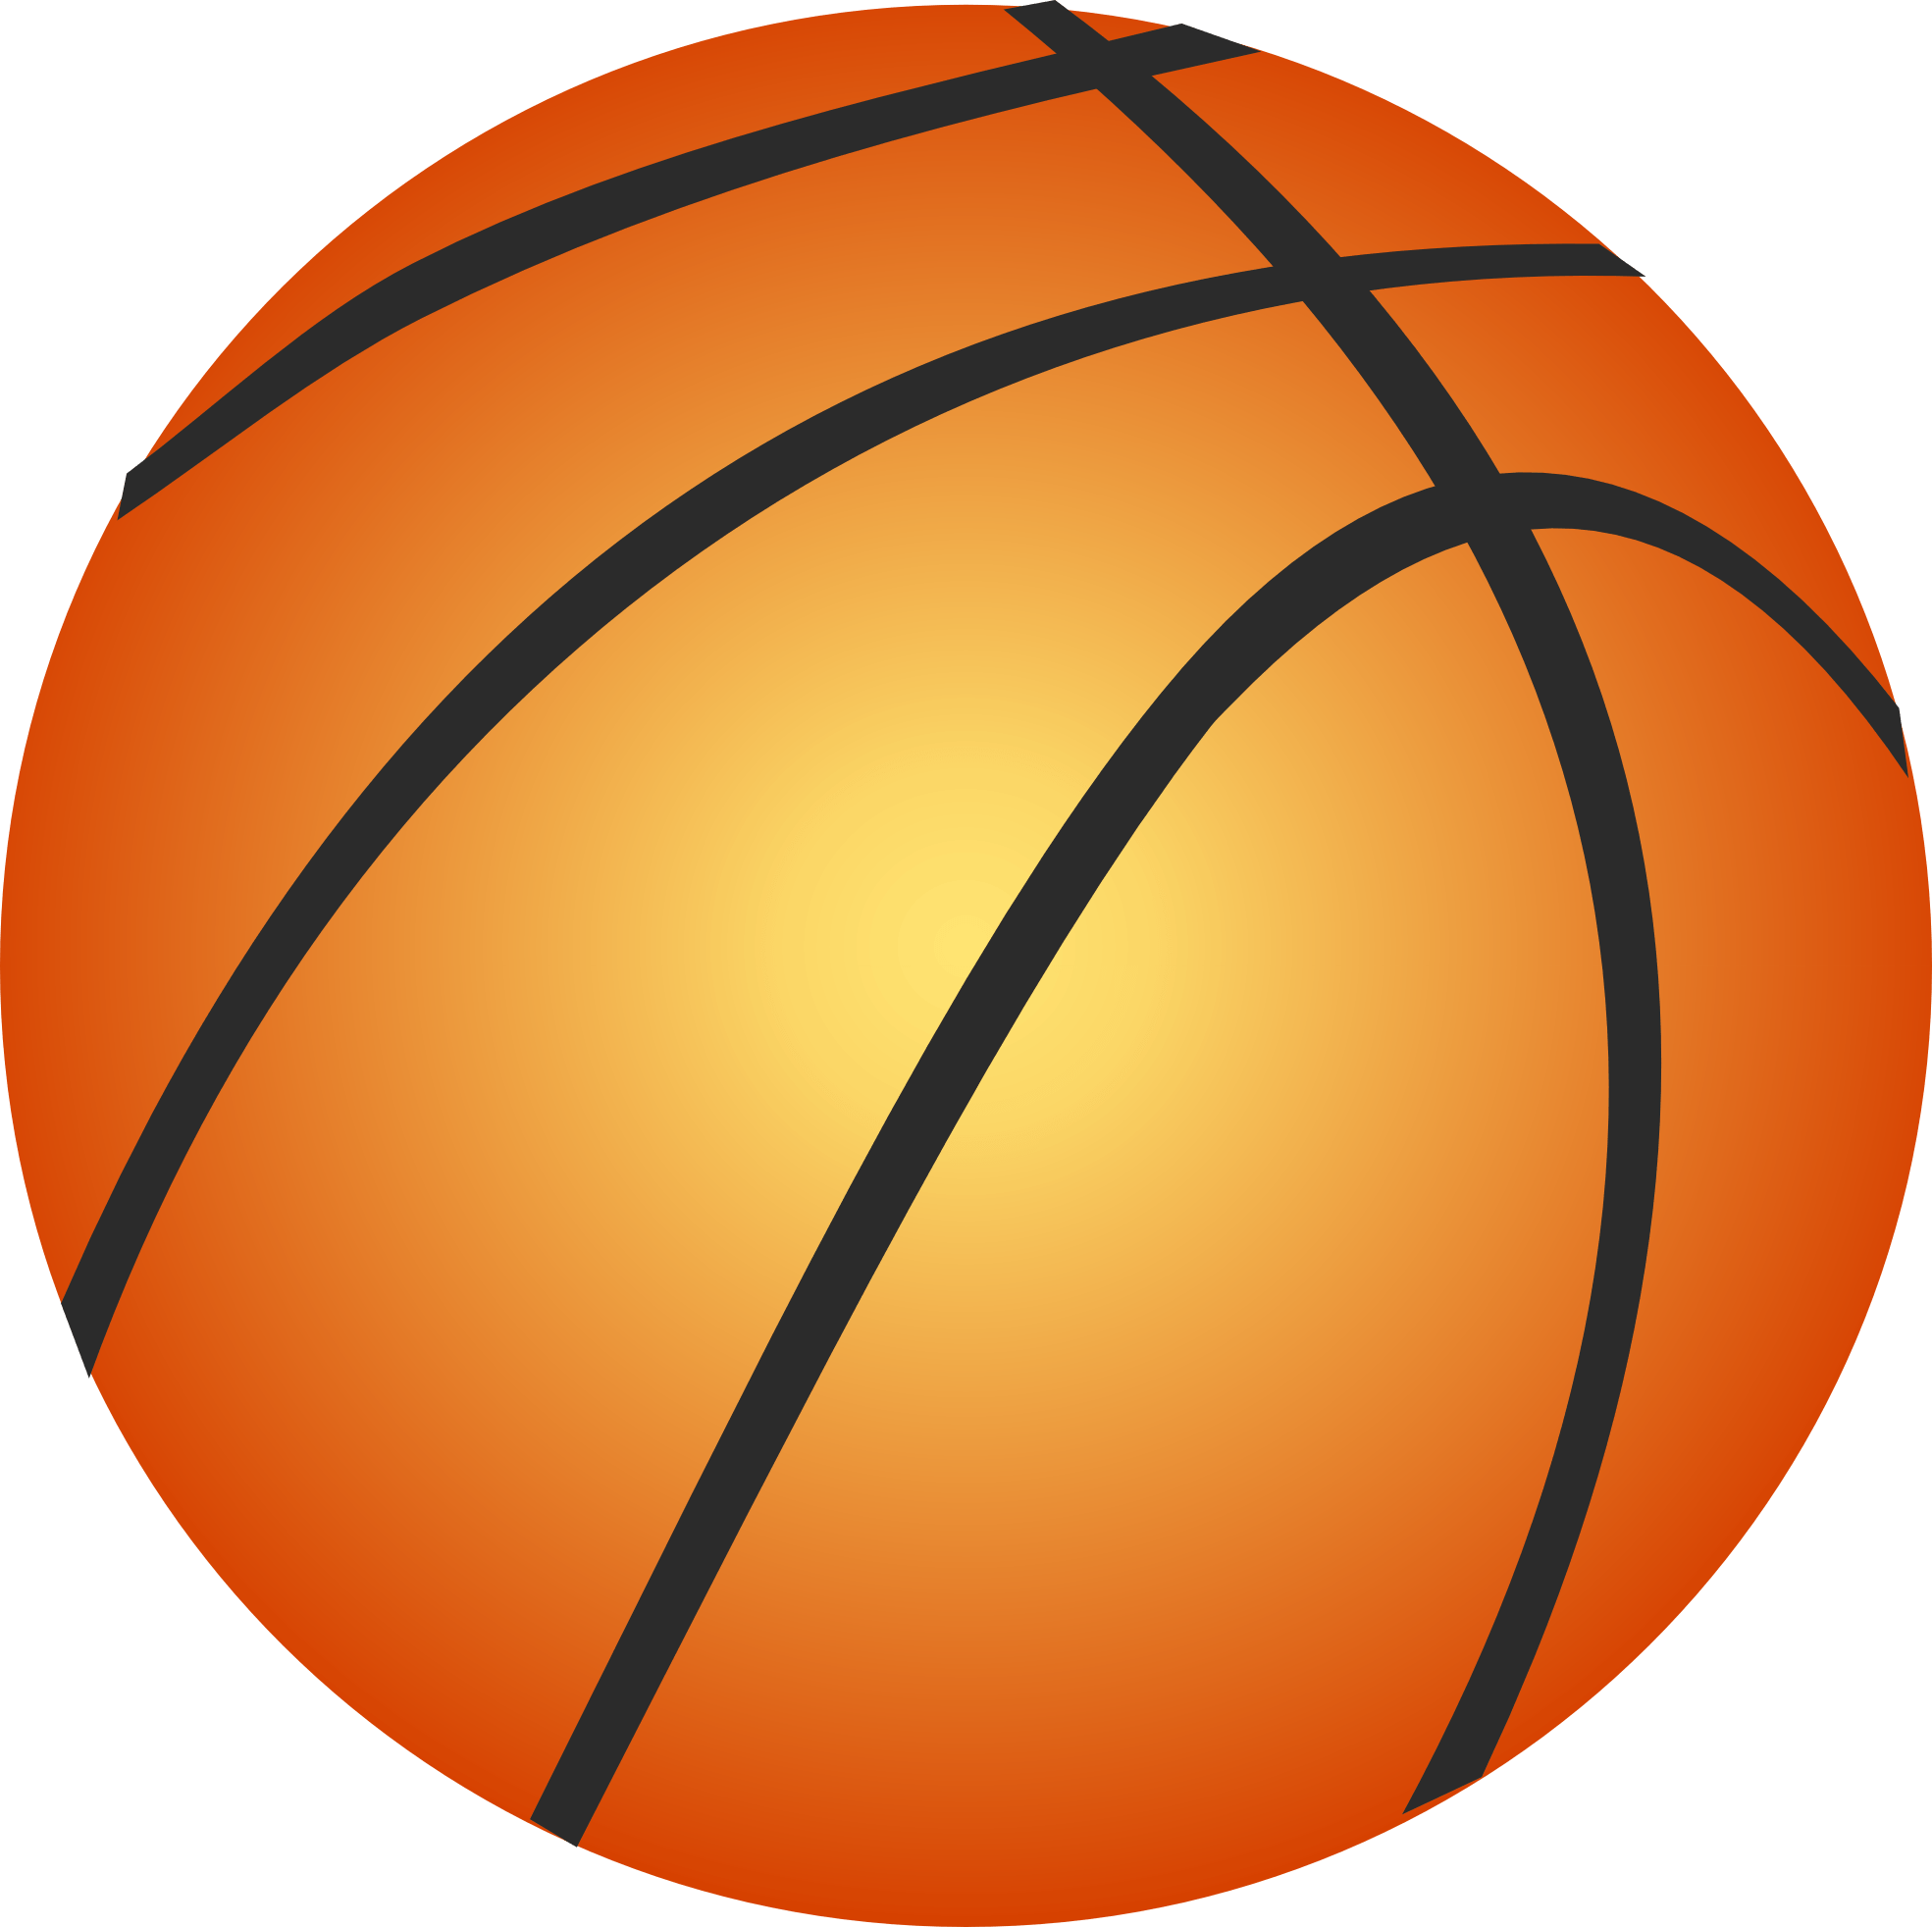 Cartoon basketball clipart clipart freeuse stock Cartoon Basketball Images | Free download best Cartoon Basketball ... clipart freeuse stock